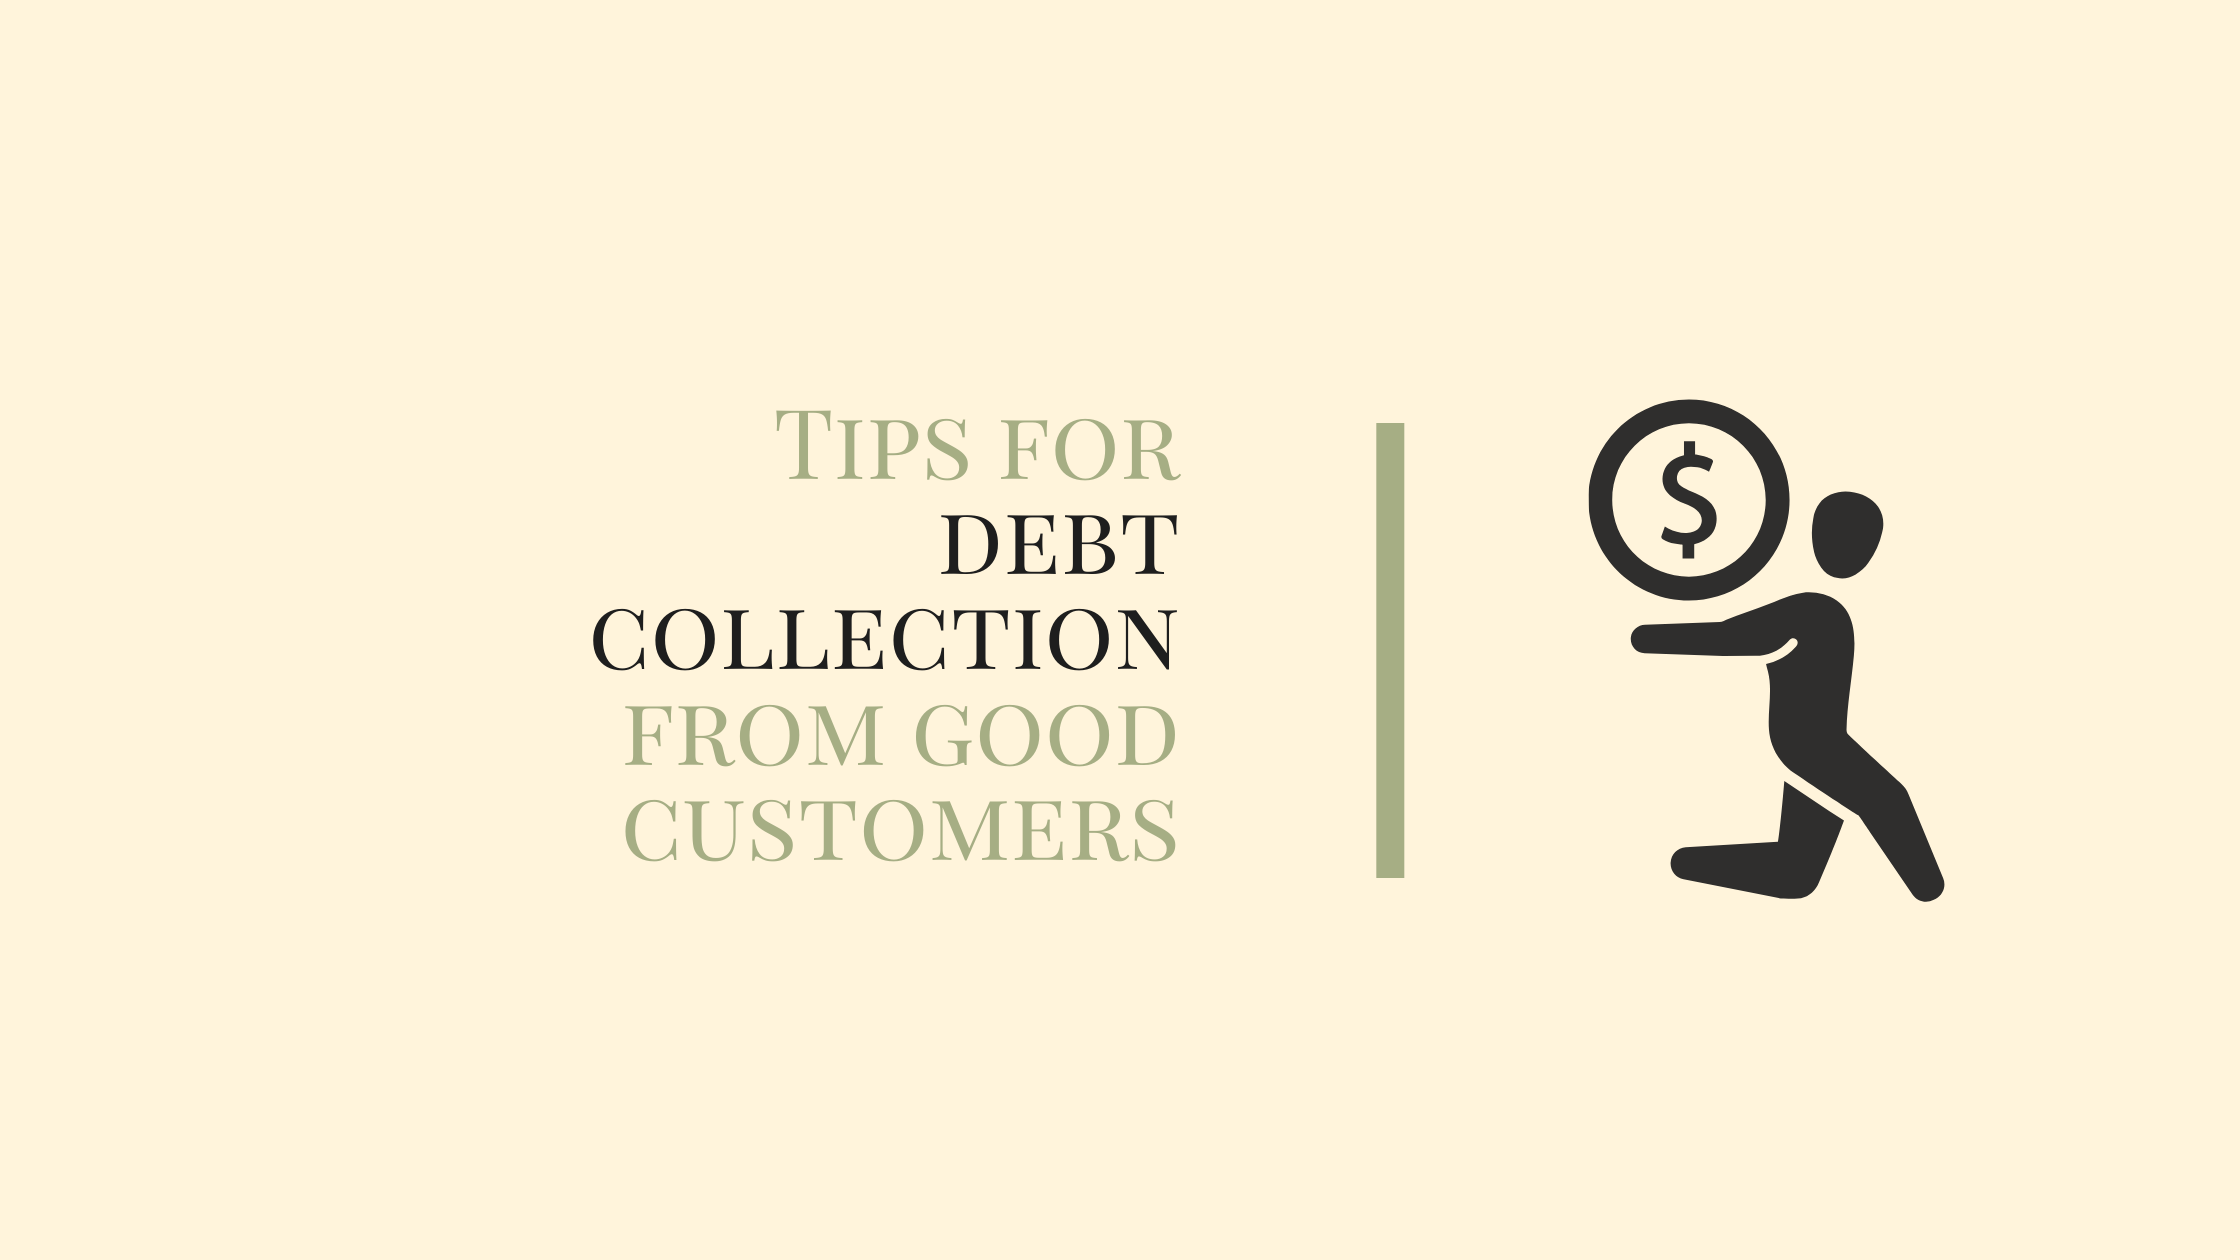 Tips for Debt Collection From Good Customers